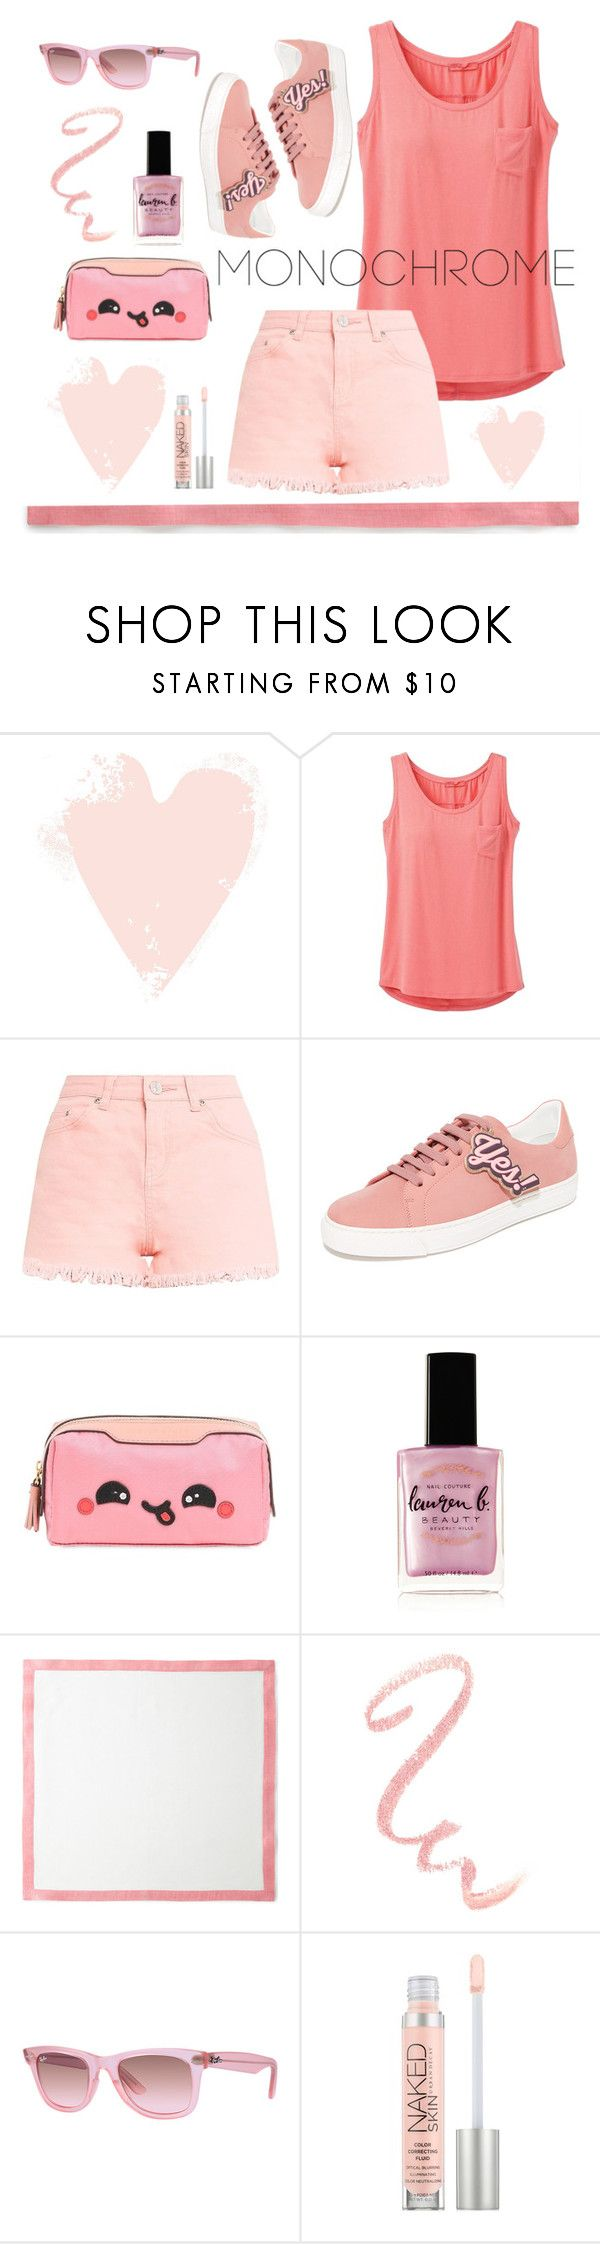 """Relaxed Pink"" by numeangeleyes ❤ liked on Polyvore featuring prAna, Anya Hindmarch, Lauren B. Beauty, Deborah Rhodes, Ray-Ban, Urban Decay and monochromepink"